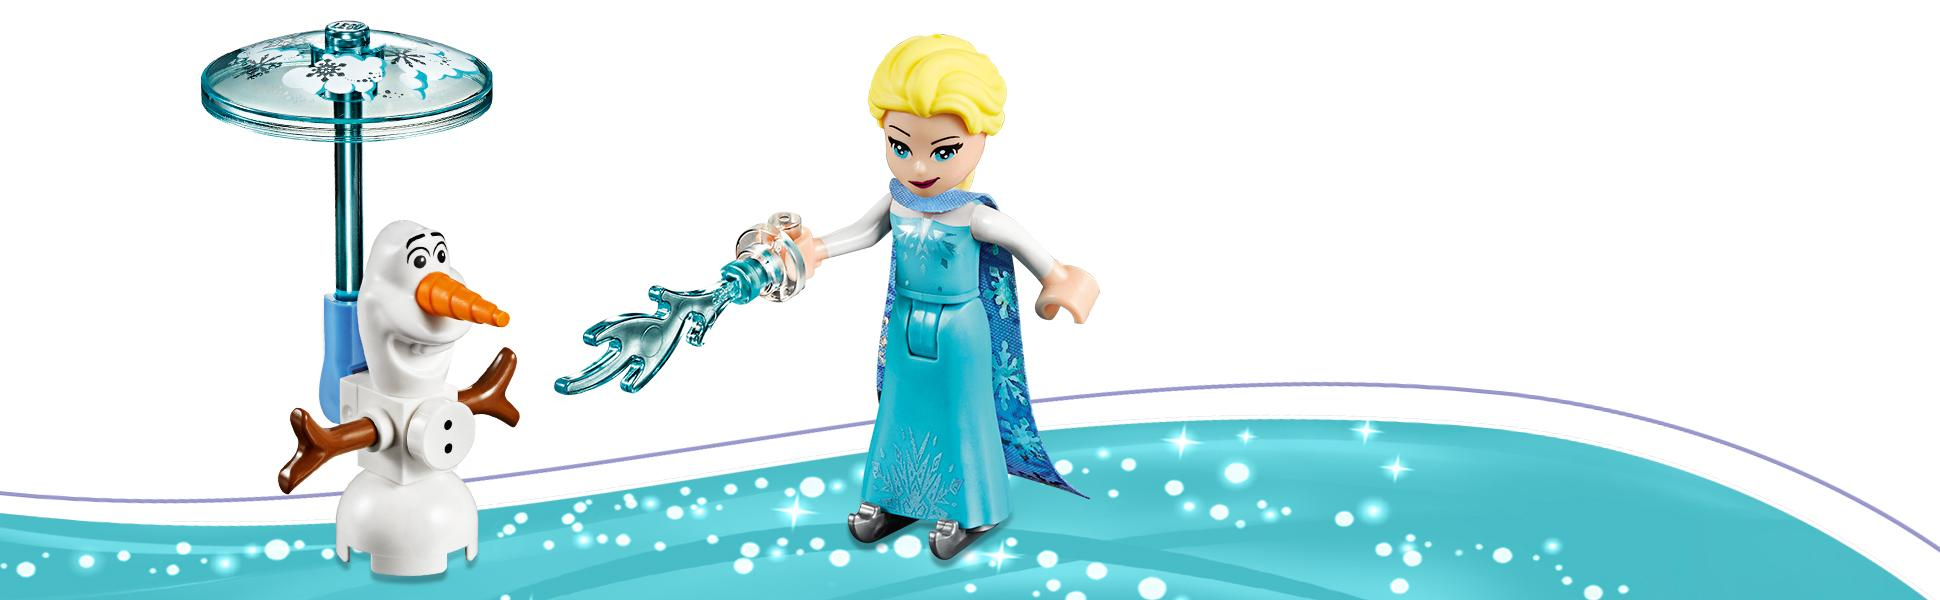 16c2805901aab LEGO Disney Frozen Elsa's Market Adventure 41155 Buildable Toy for Girls  and Boys